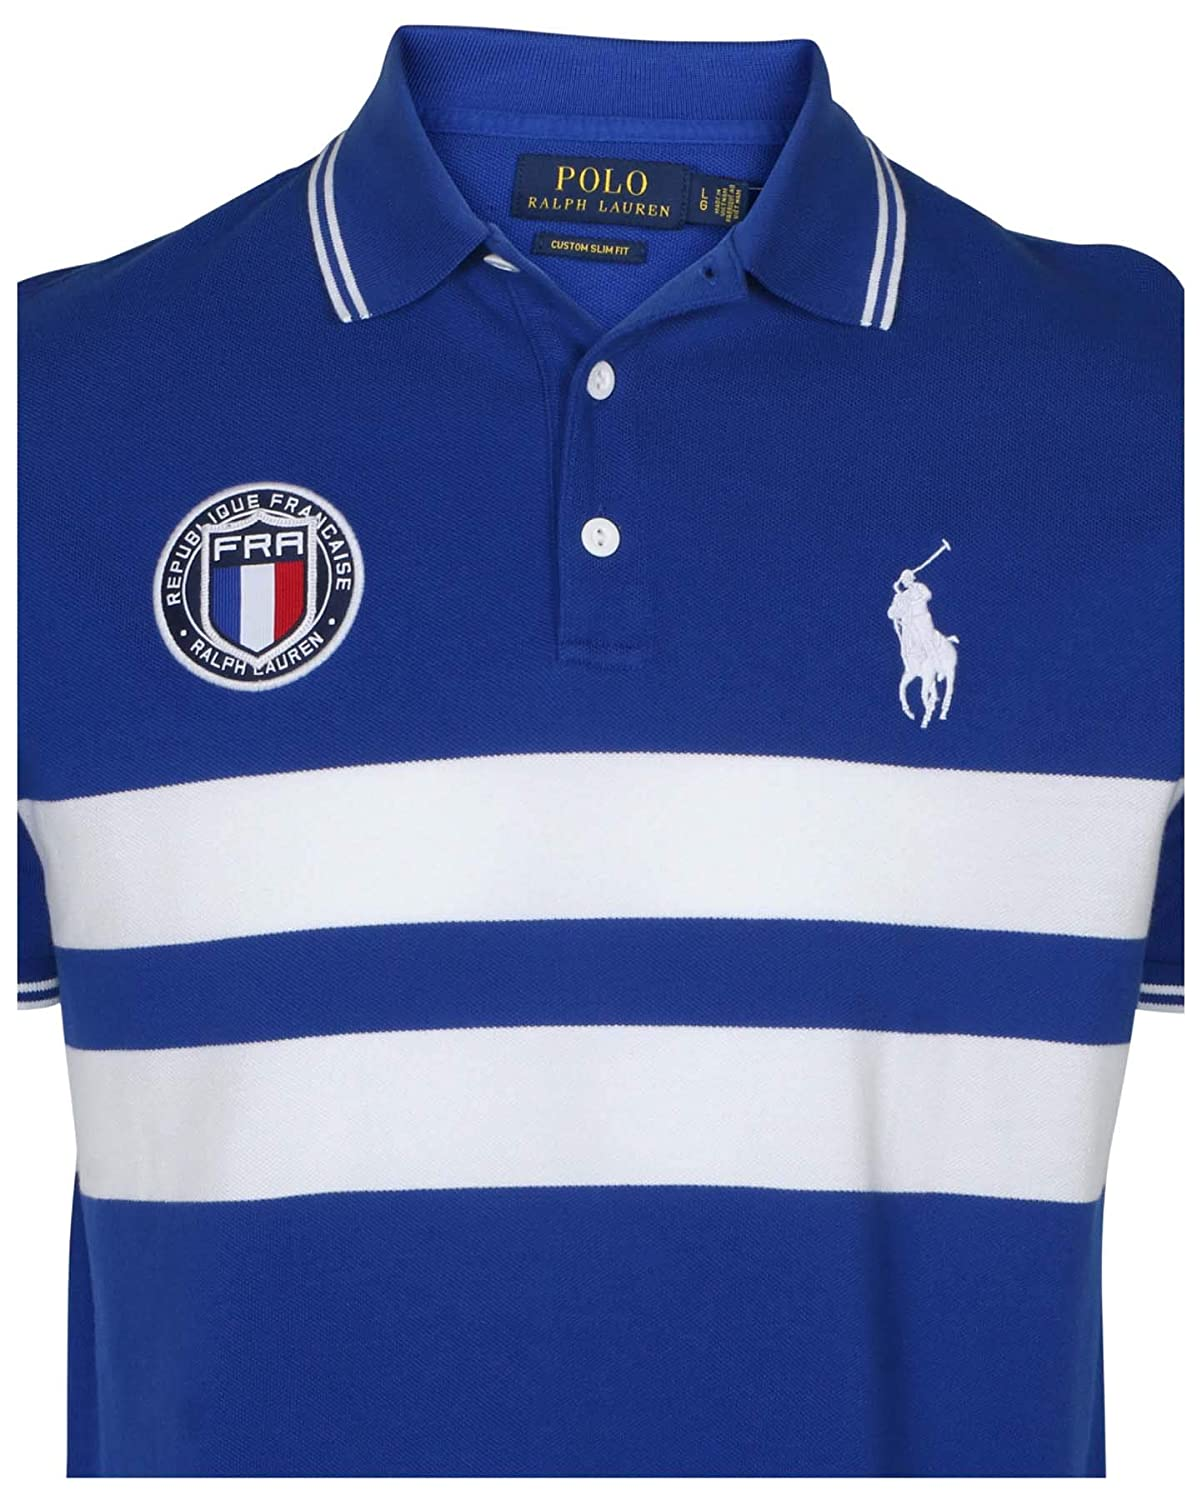 79b14e88d Polo Ralph Lauren Men s Custom Slim Fit Country Polo Shirt at Amazon Men s  Clothing store